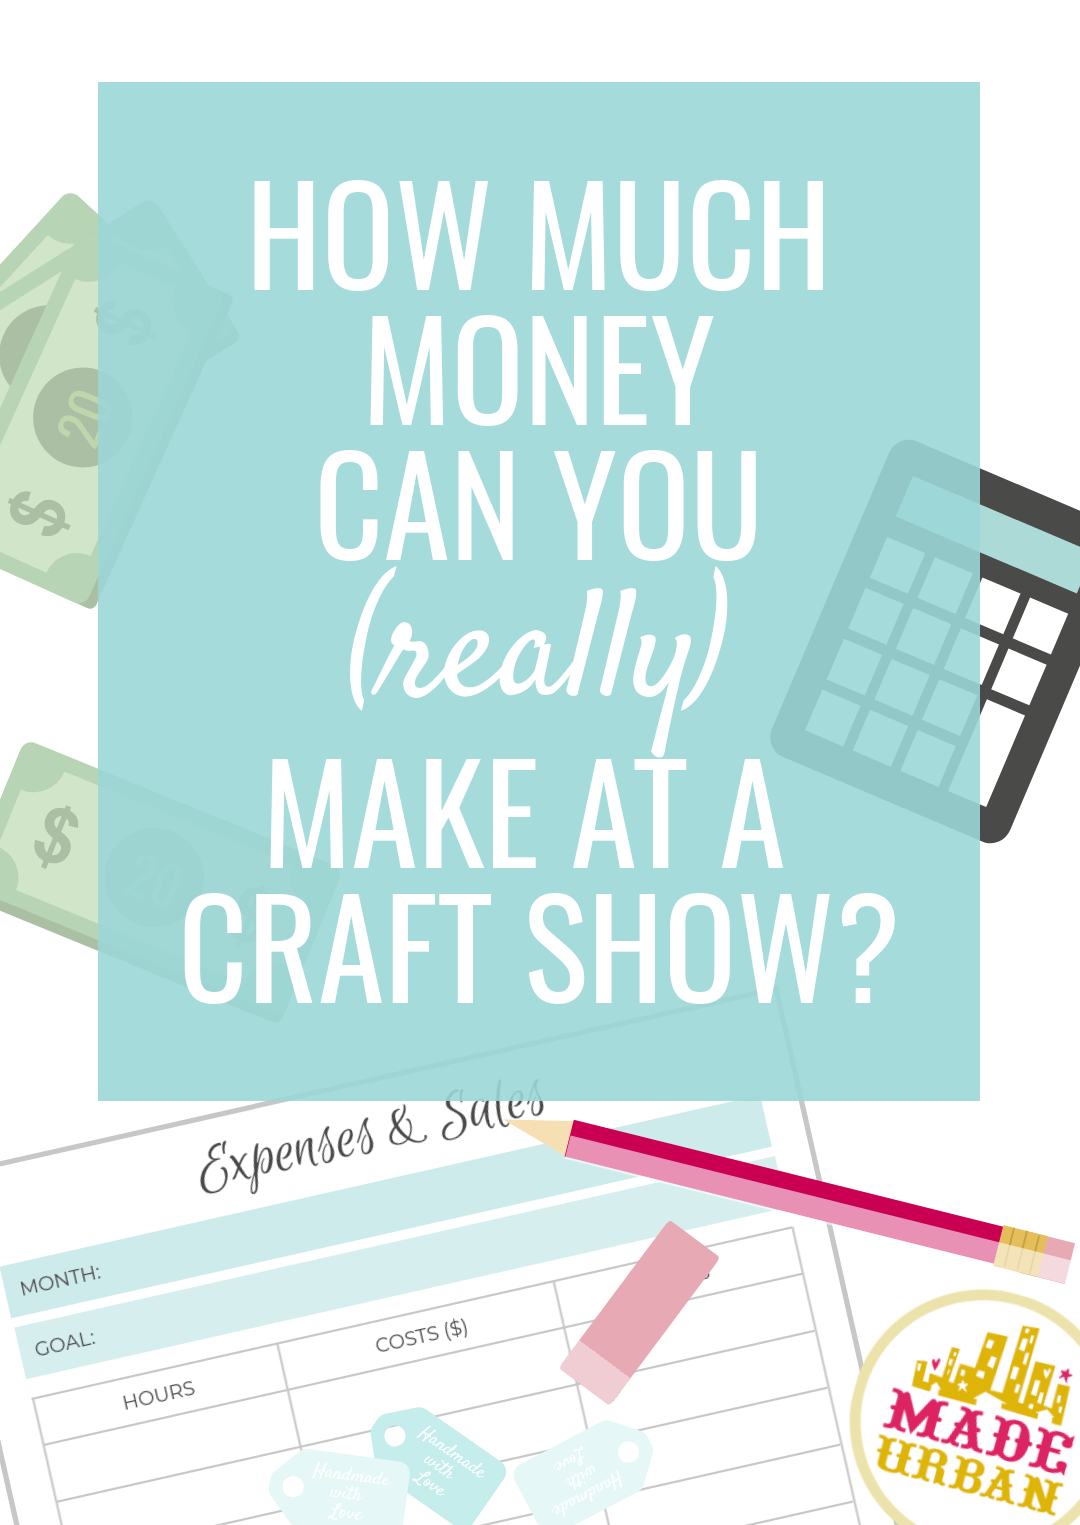 How Much Money can you Make at a Craft Show?